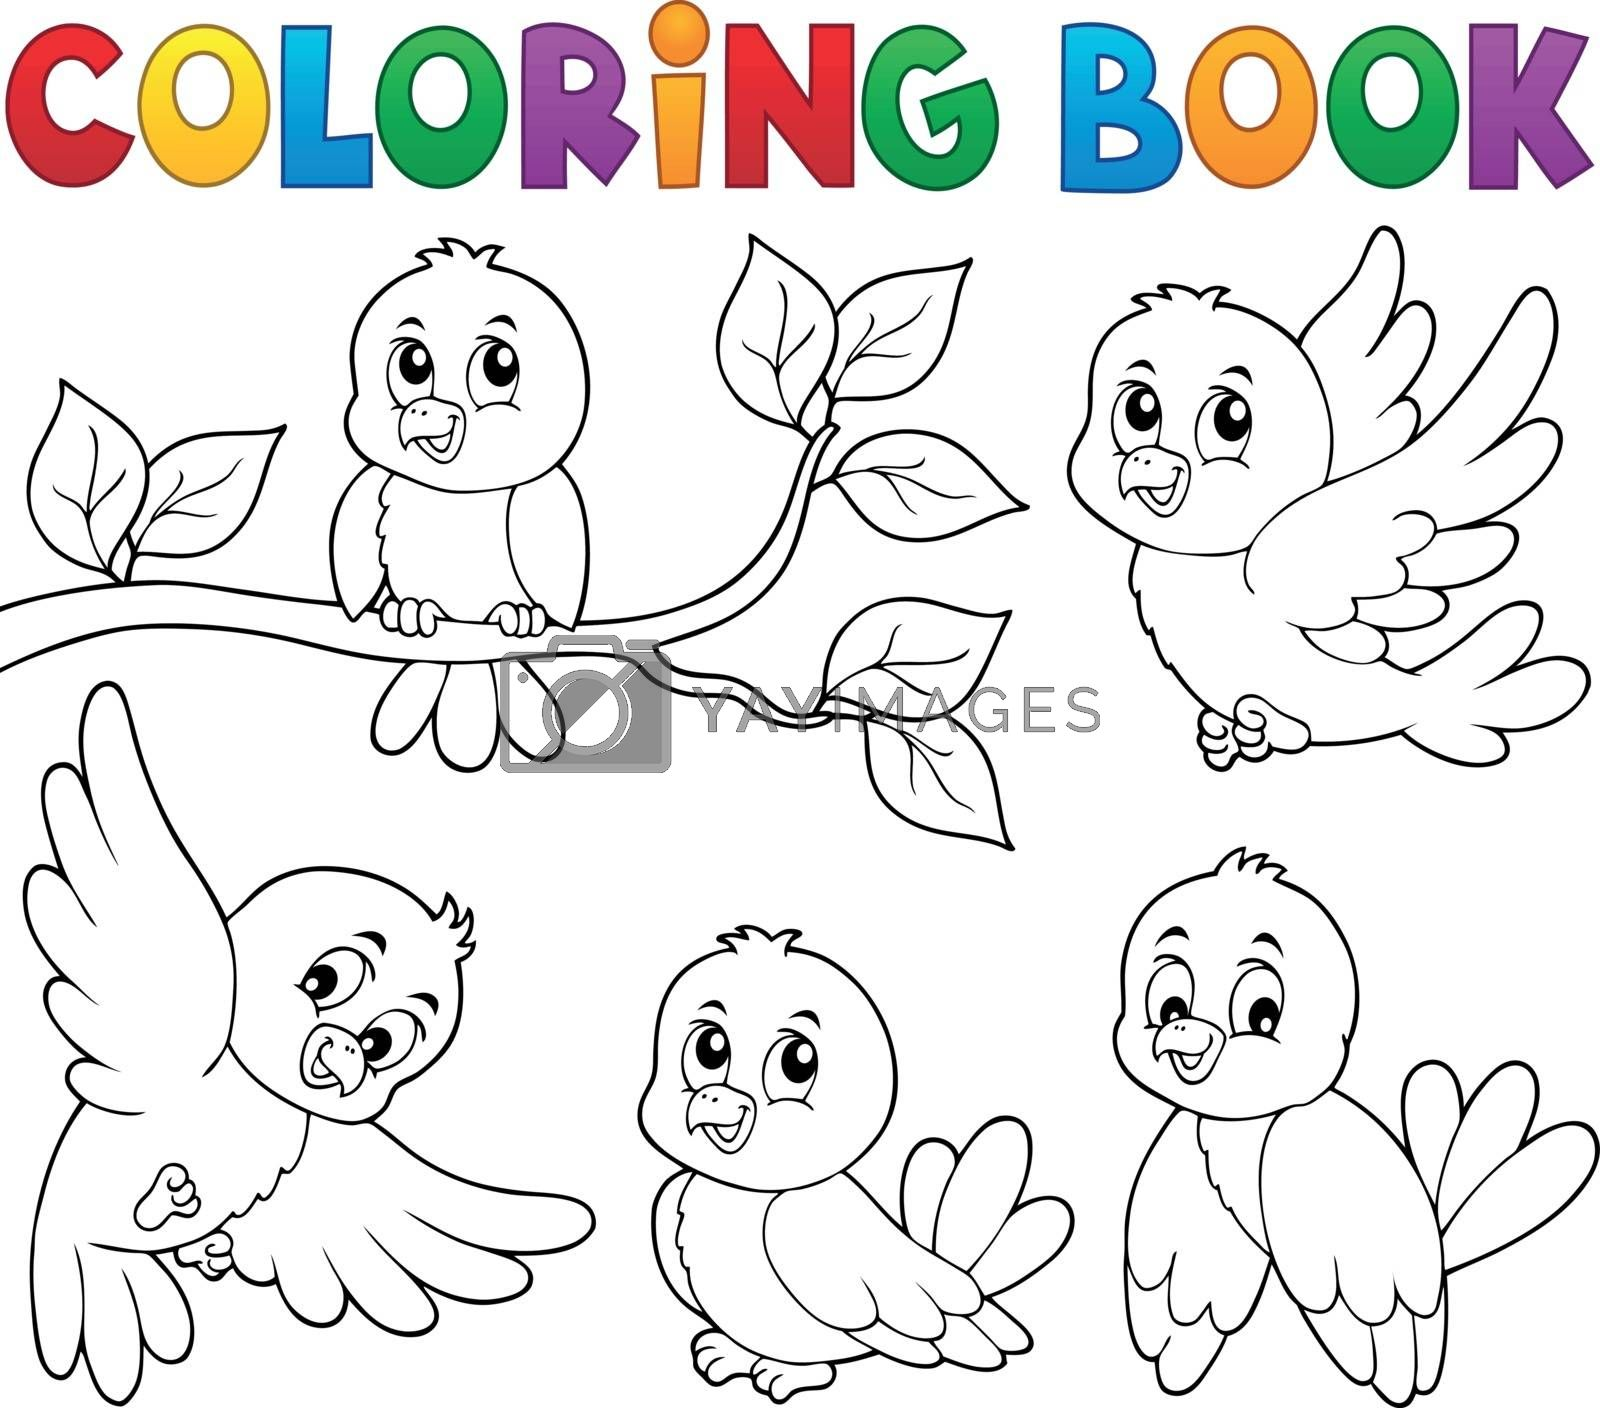 Coloring book happy birds theme 1 - eps10 vector illustration.